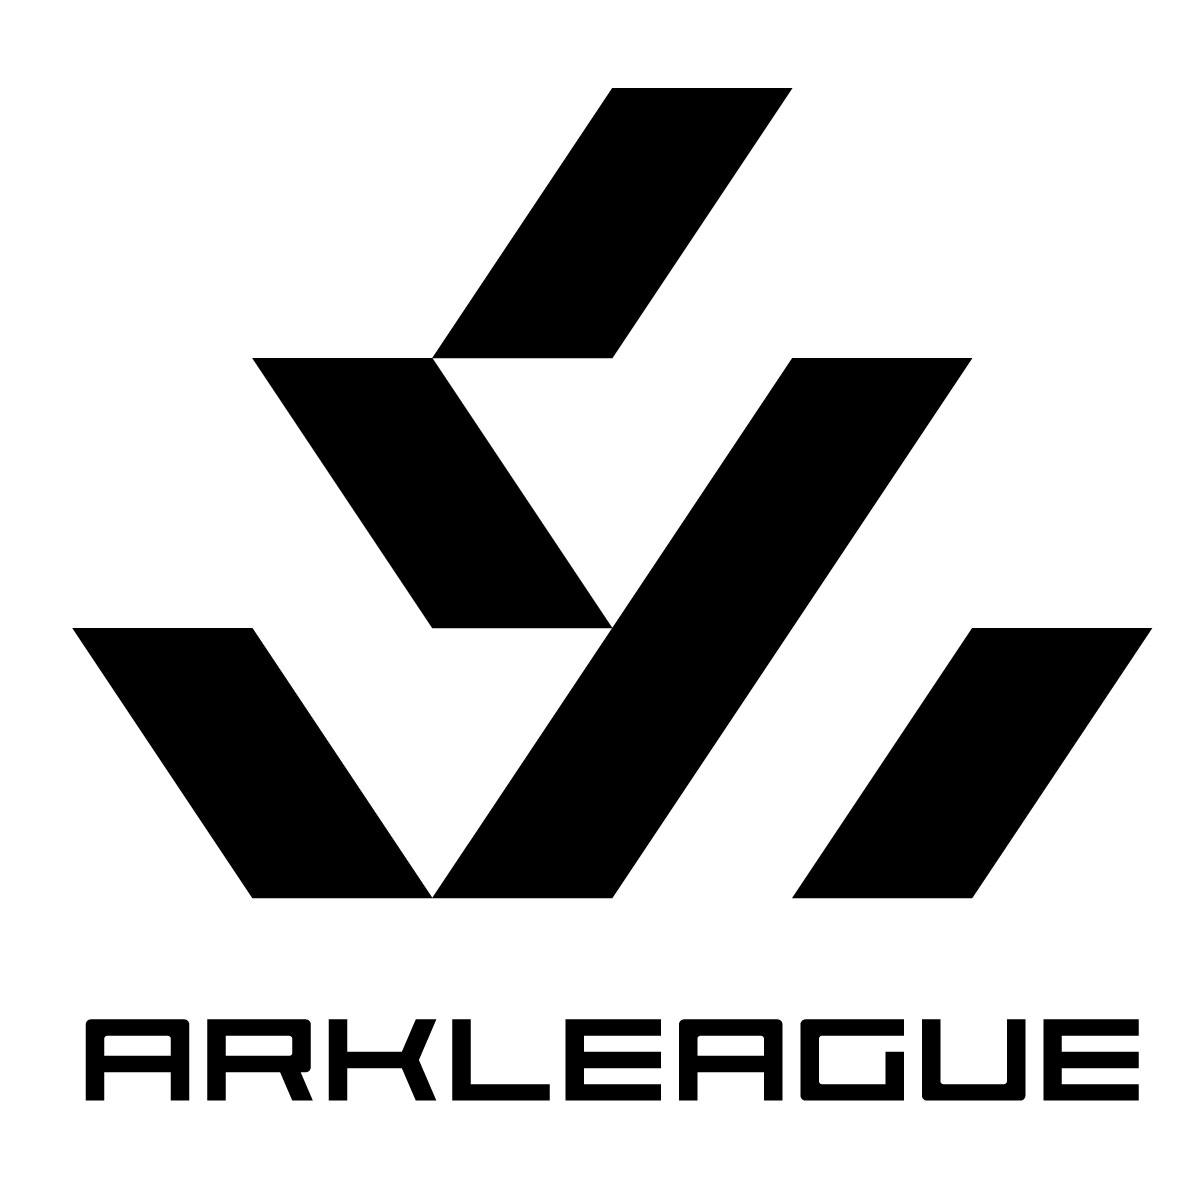 ARK League - Street - 5 STAR -Tokyo 2020 Qualification Event SEASON #2